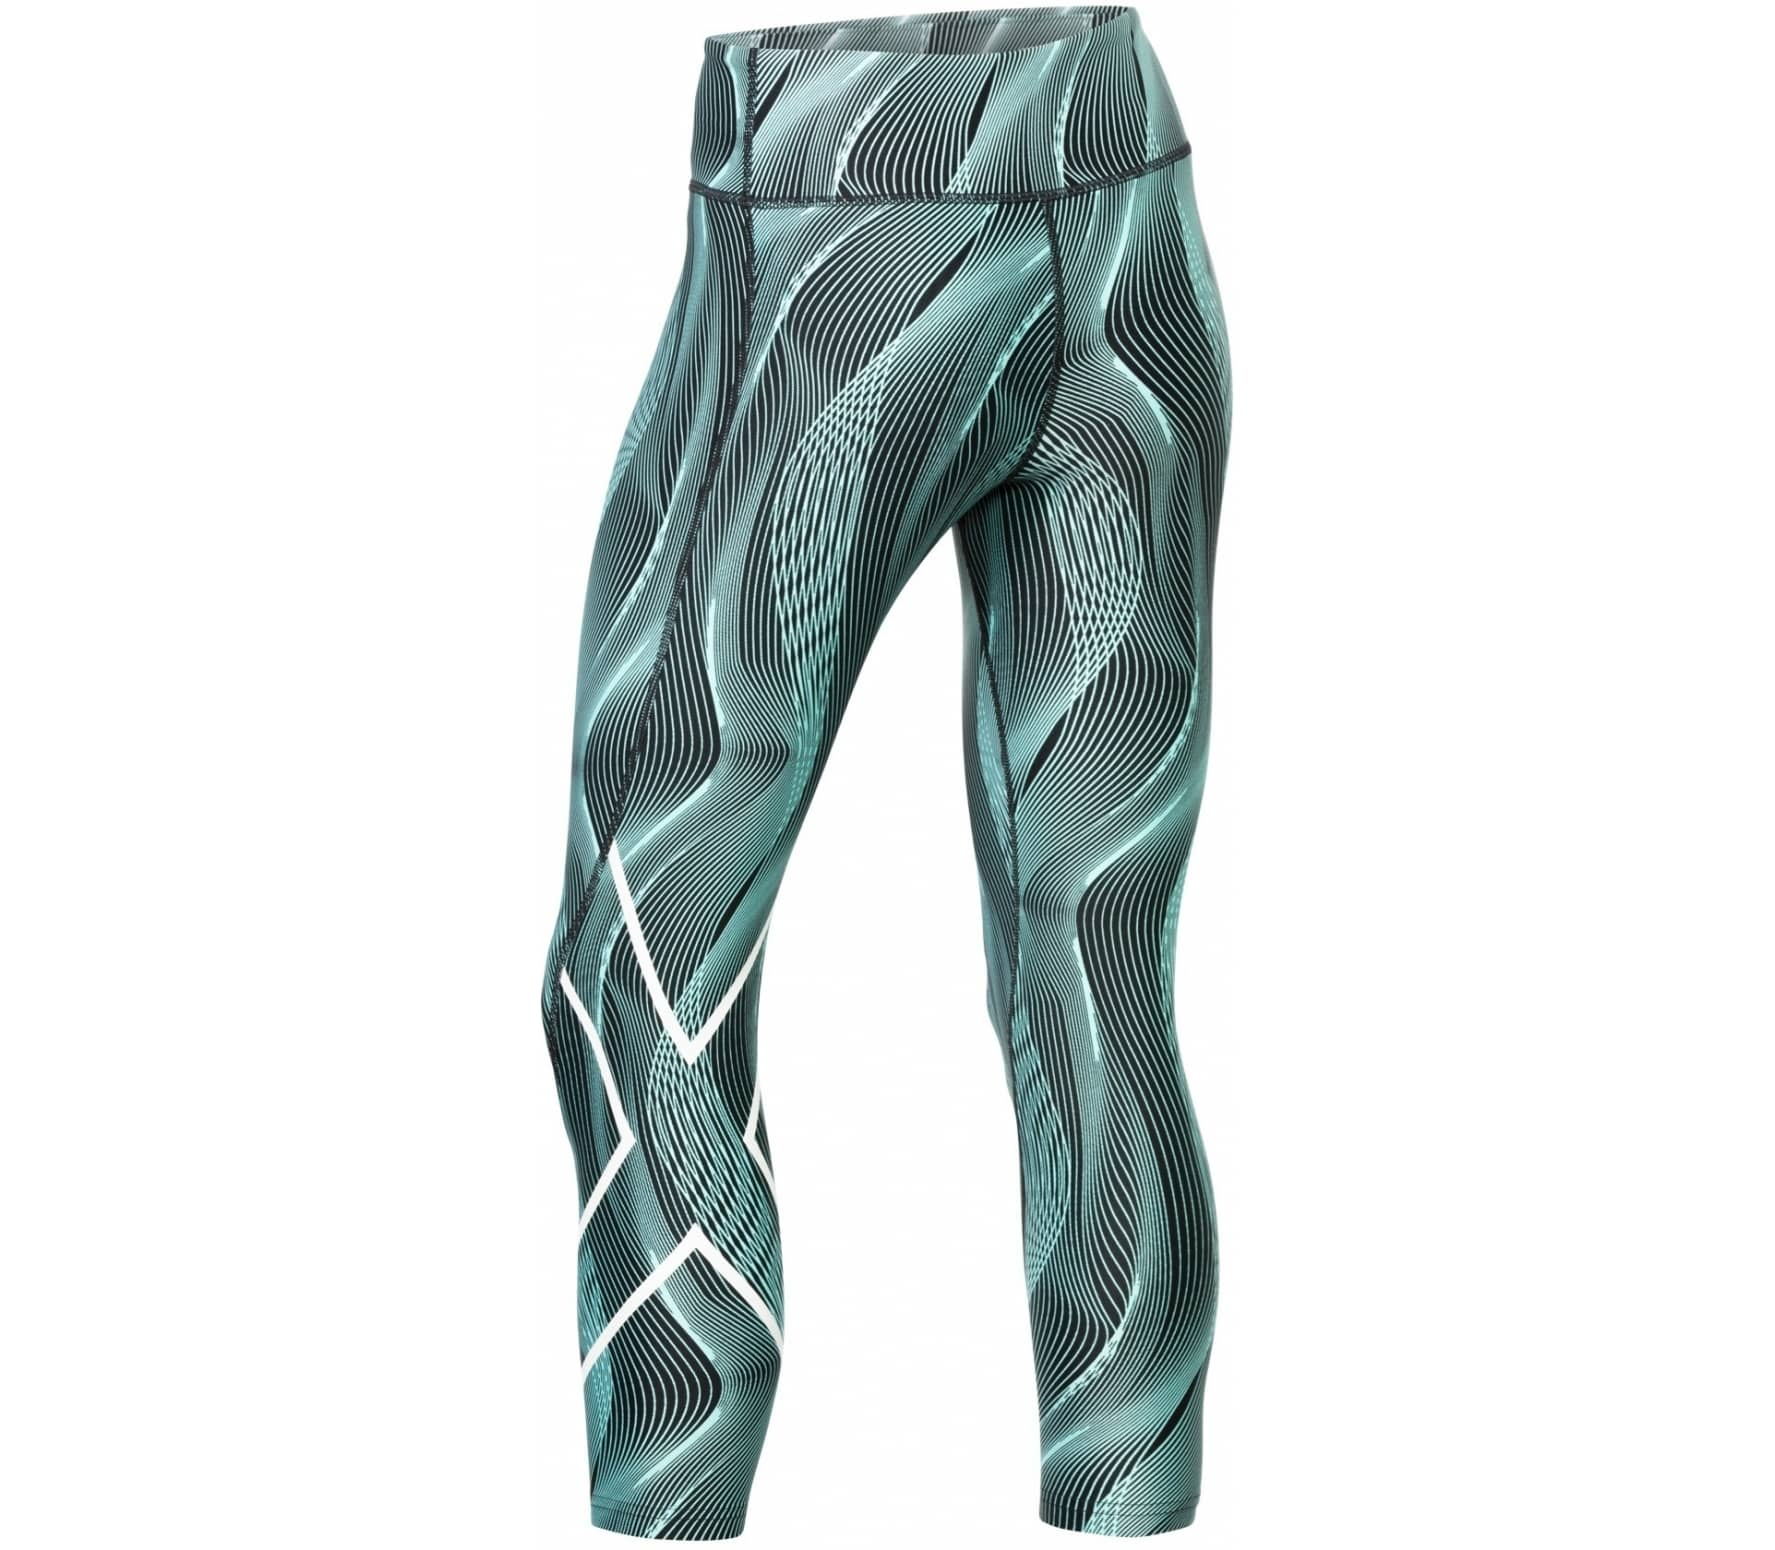 978a19d1 2XU - Print Mid-Rise Compression Tights 7/8 with Storage women's running  pants